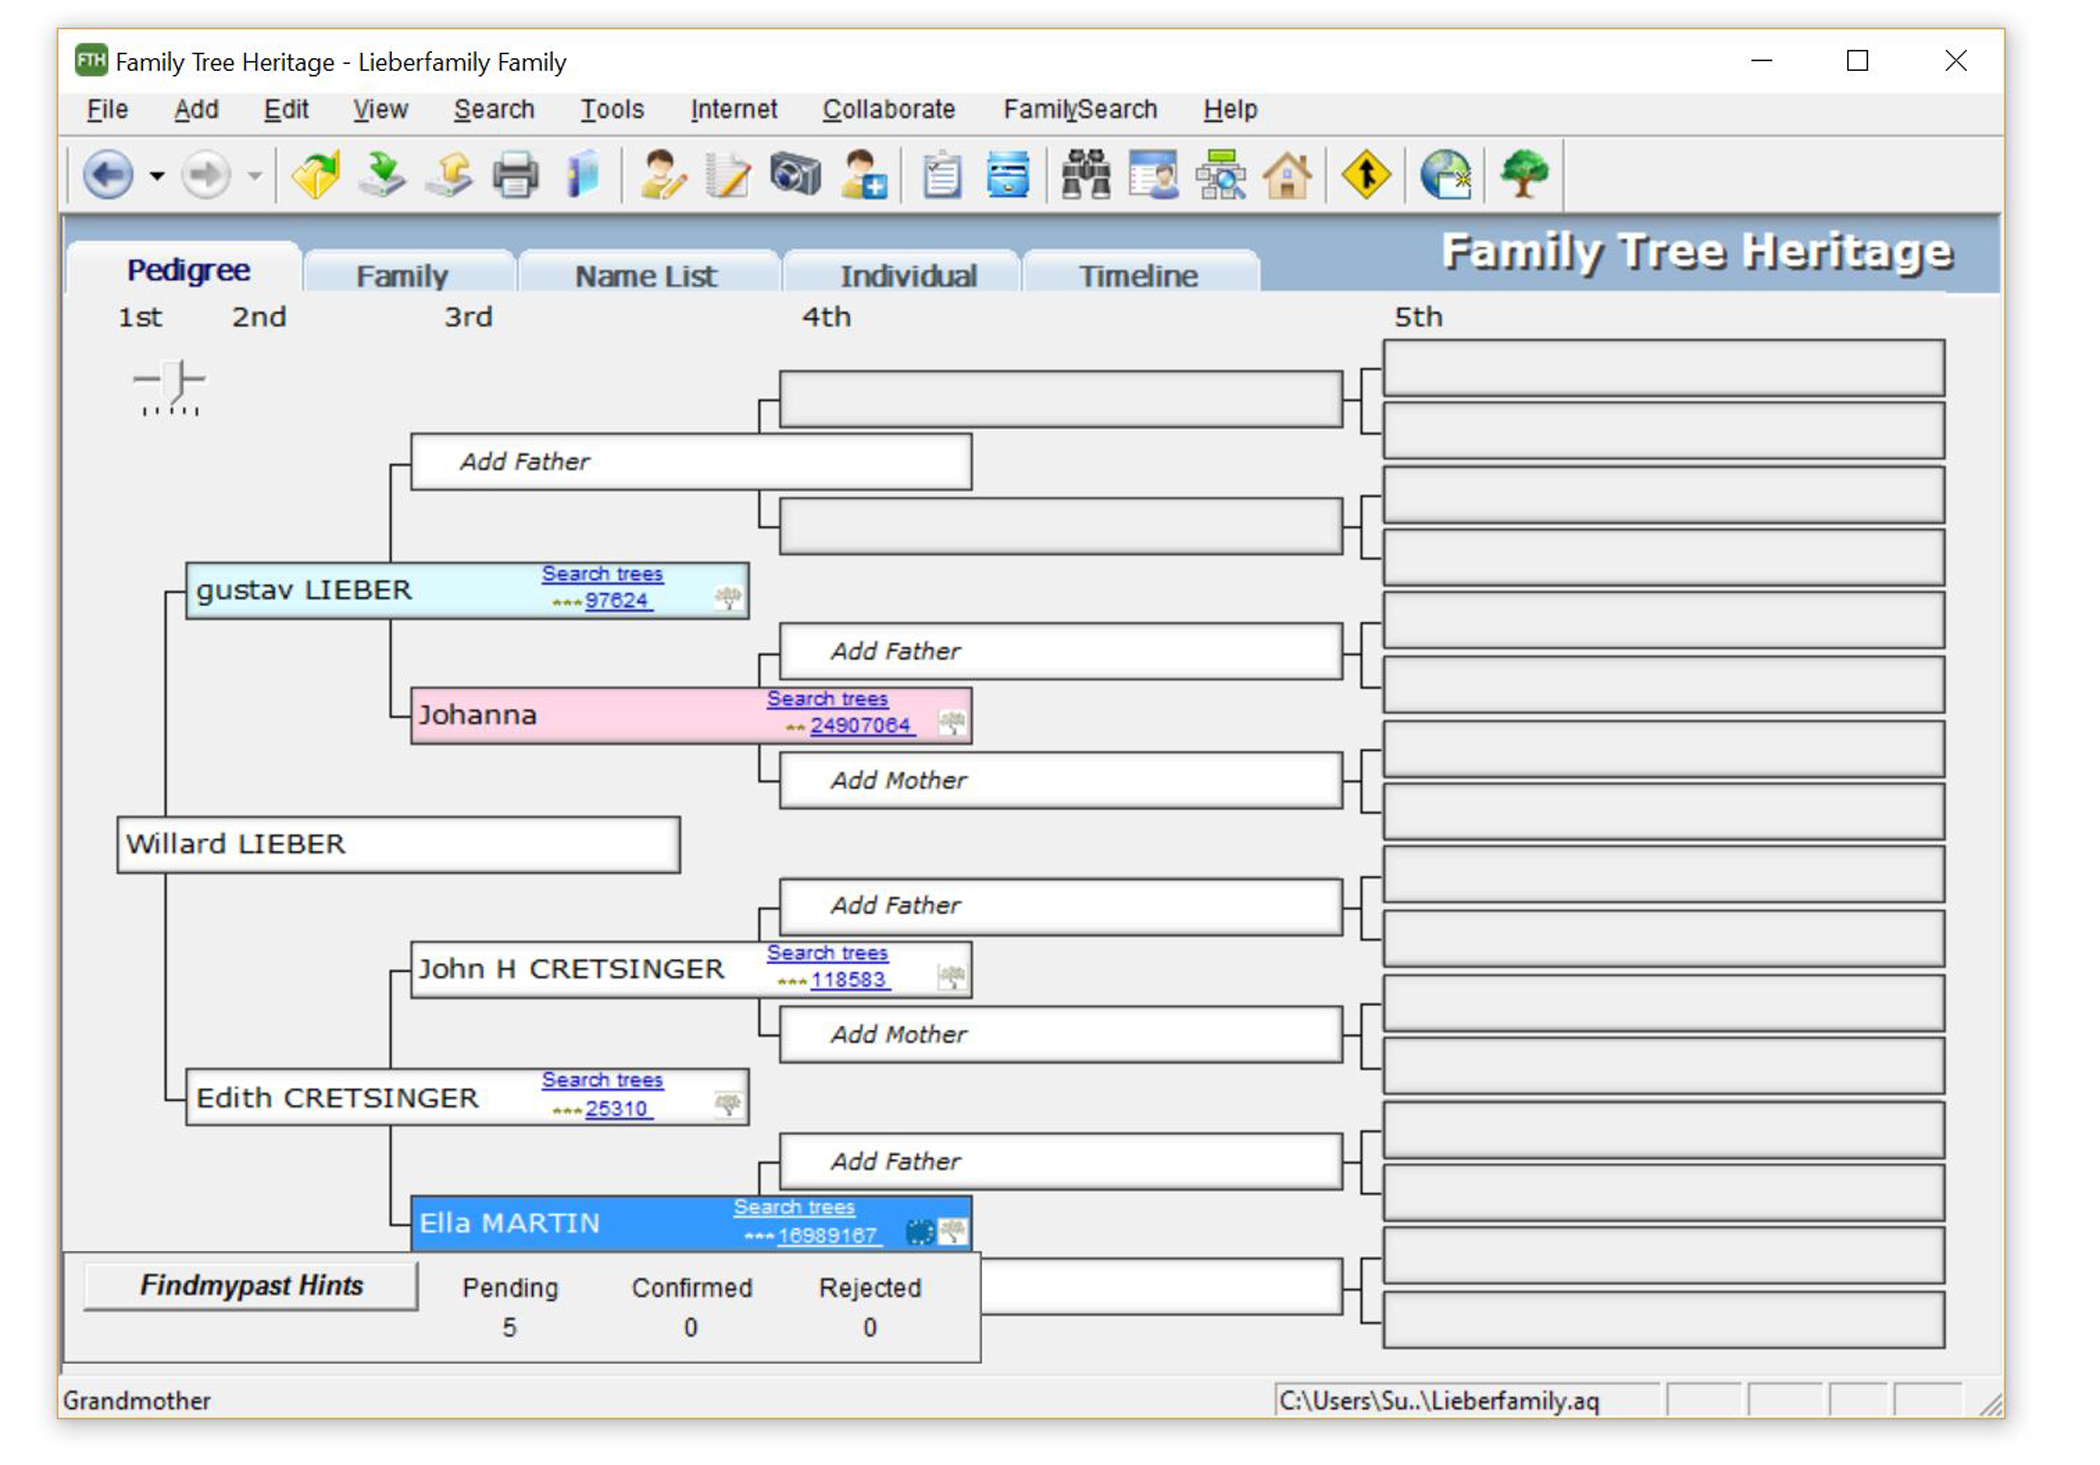 TreeTips™ is an innovative technology built into Family Tree Heritage that displays hints for possible records about your ancestors.